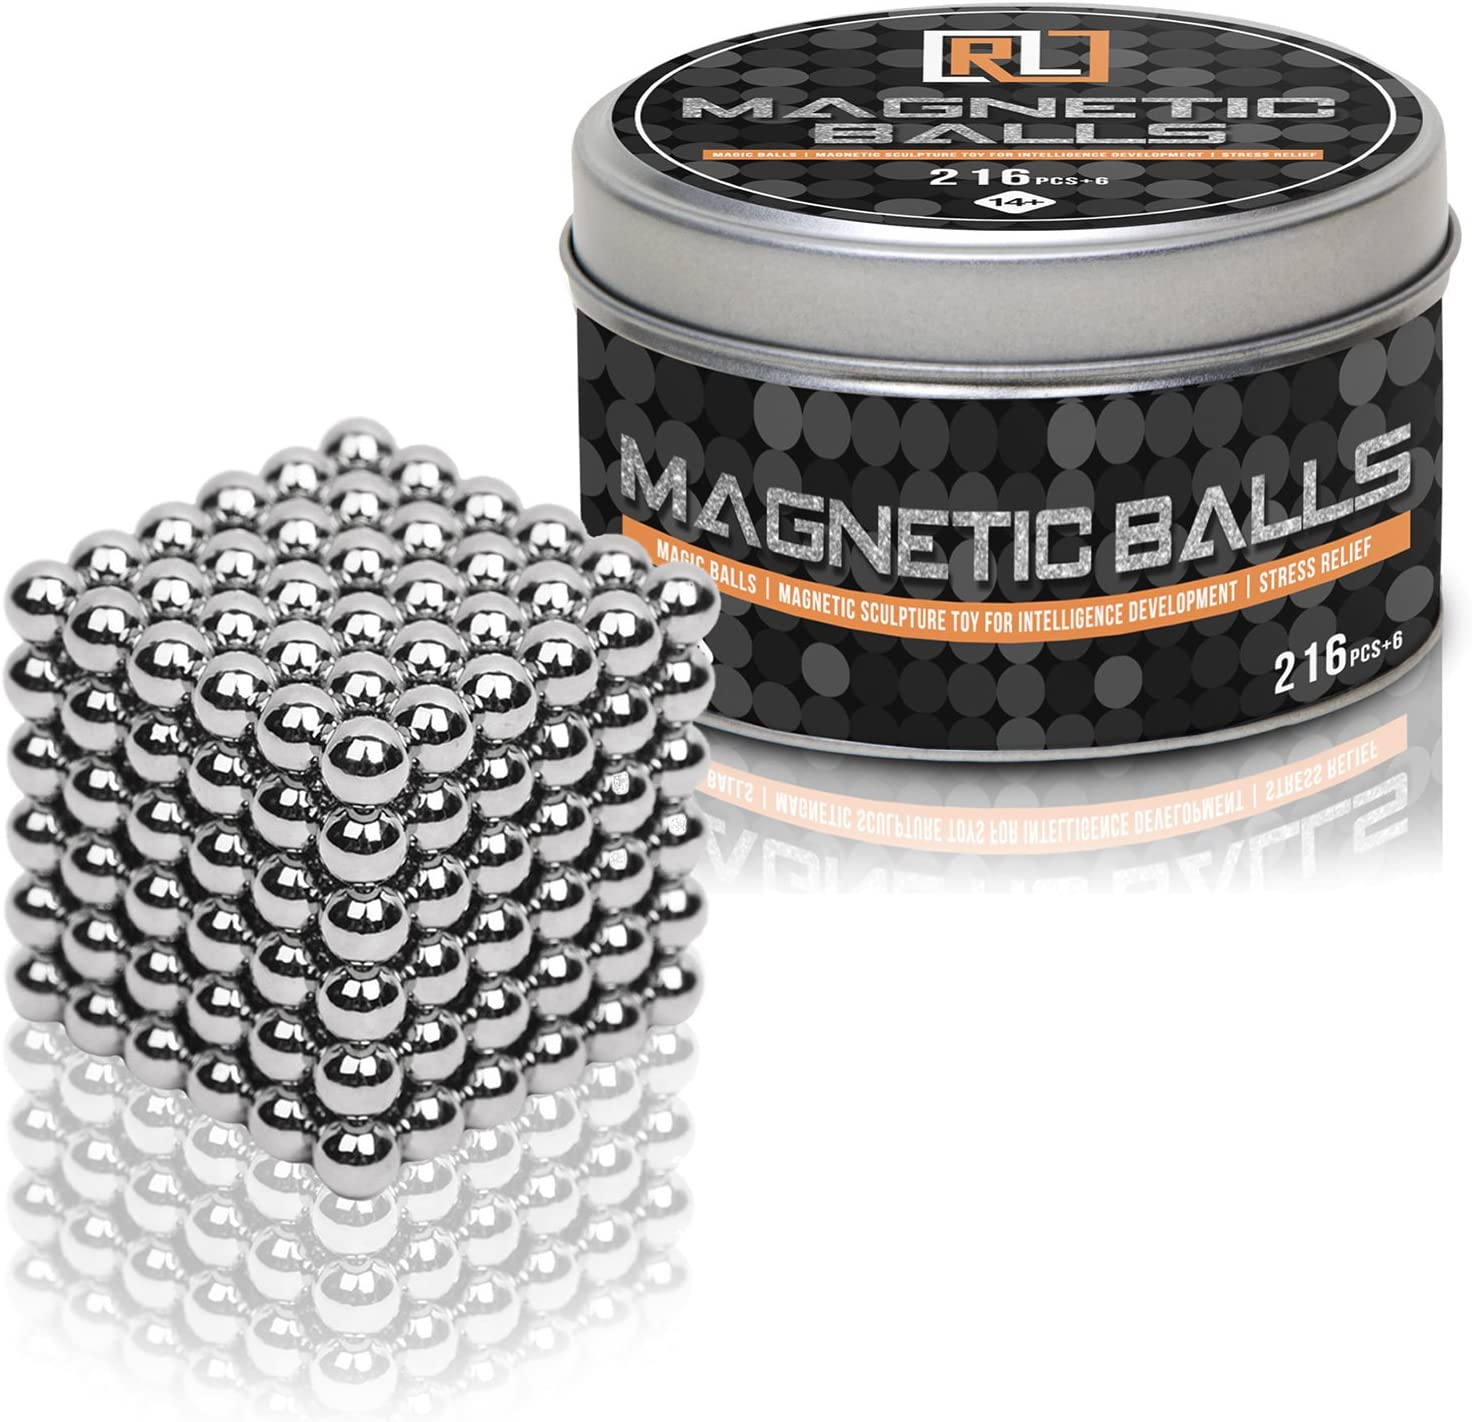 Magnetic Balls 5 mm 216 + 6 Cube Fidget Gadget Toys Rare Earth Magnet Office Desk Toy Games Magnet Toys Beads Stress Relief Toys for Adults (222 Pieces)